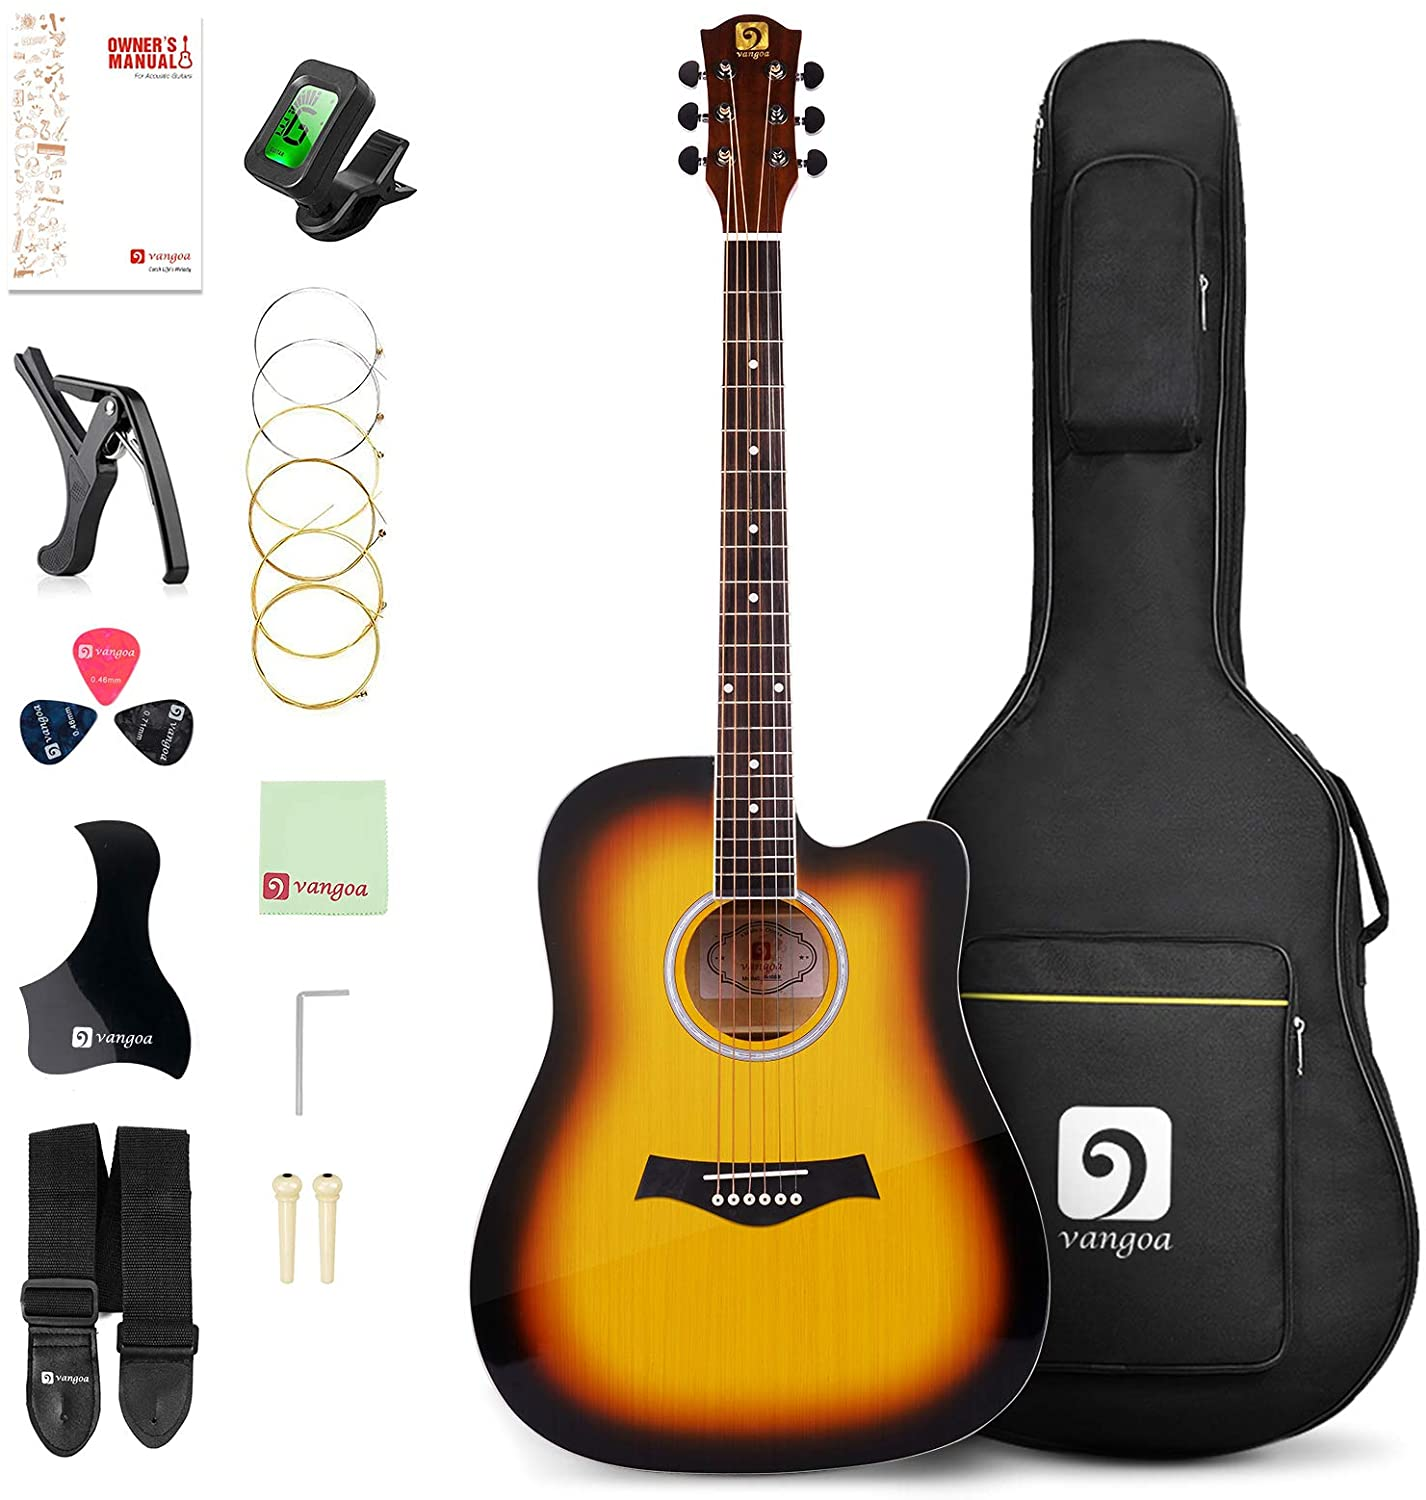 Vangoa Acoustic Guitar 41 inch, Full Size Cutaway Acoustic Guitar Kit with Padded Case, Tuner, Strap, Picks, Capo, Extra Strings for Beginners, Sunburst